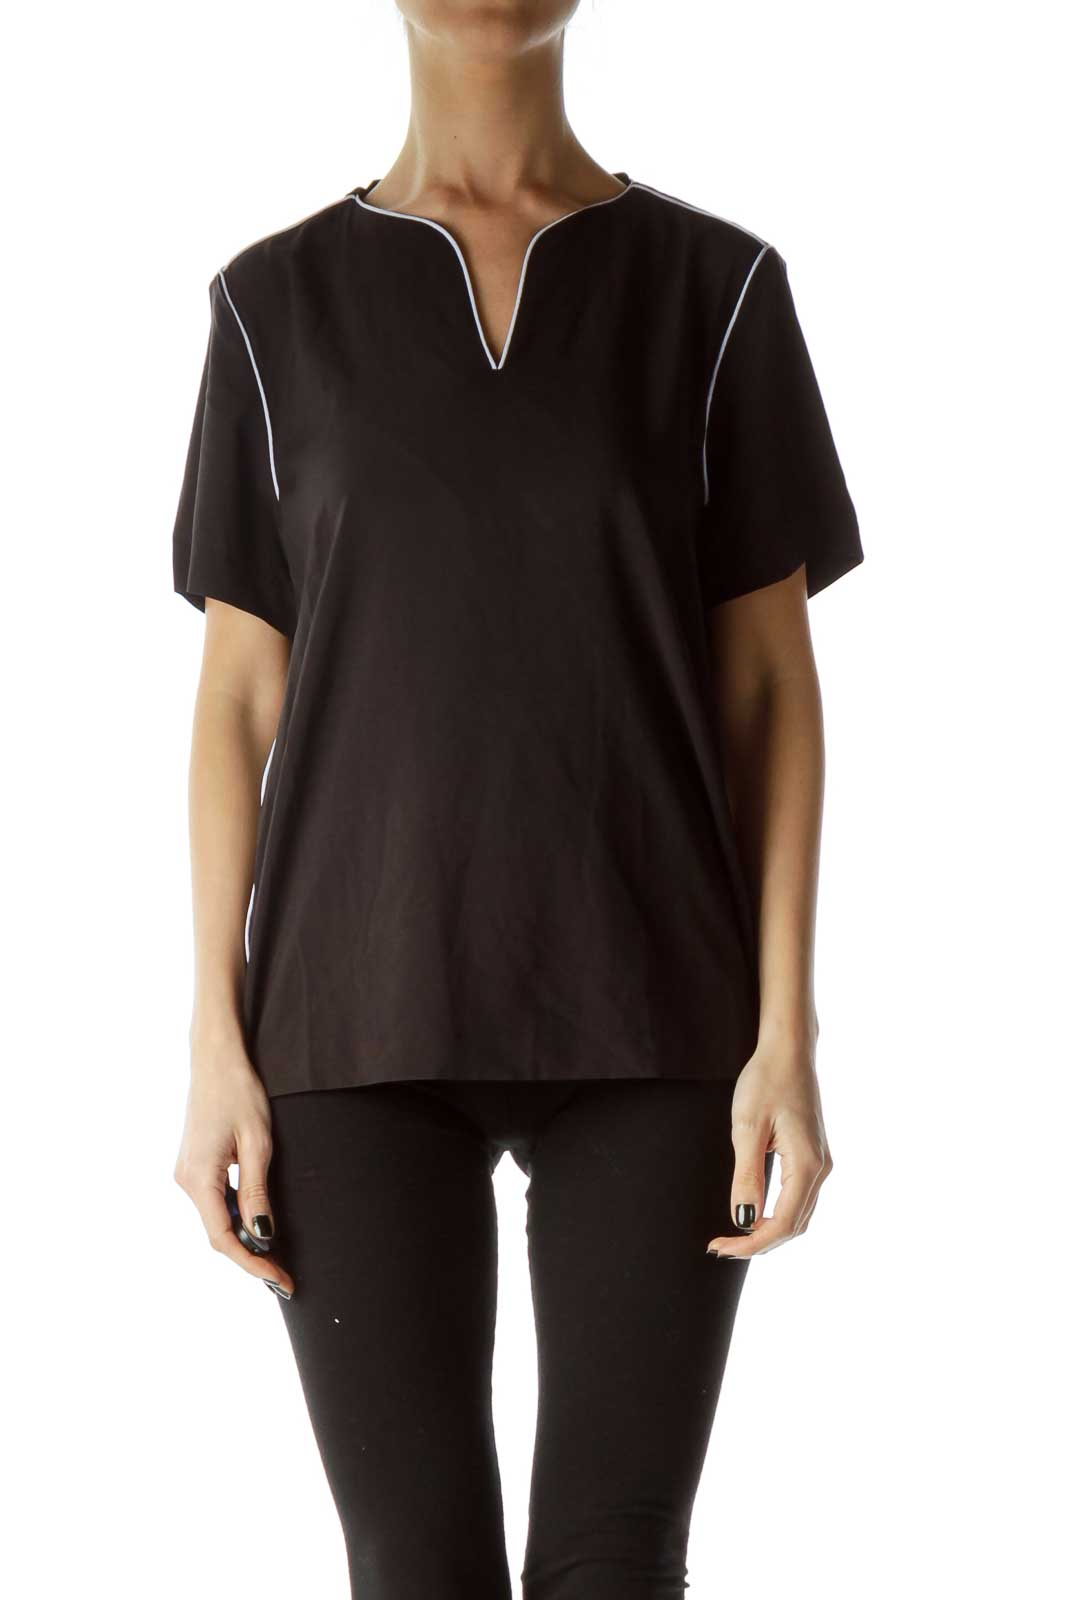 Black Blouse with White Trim Front